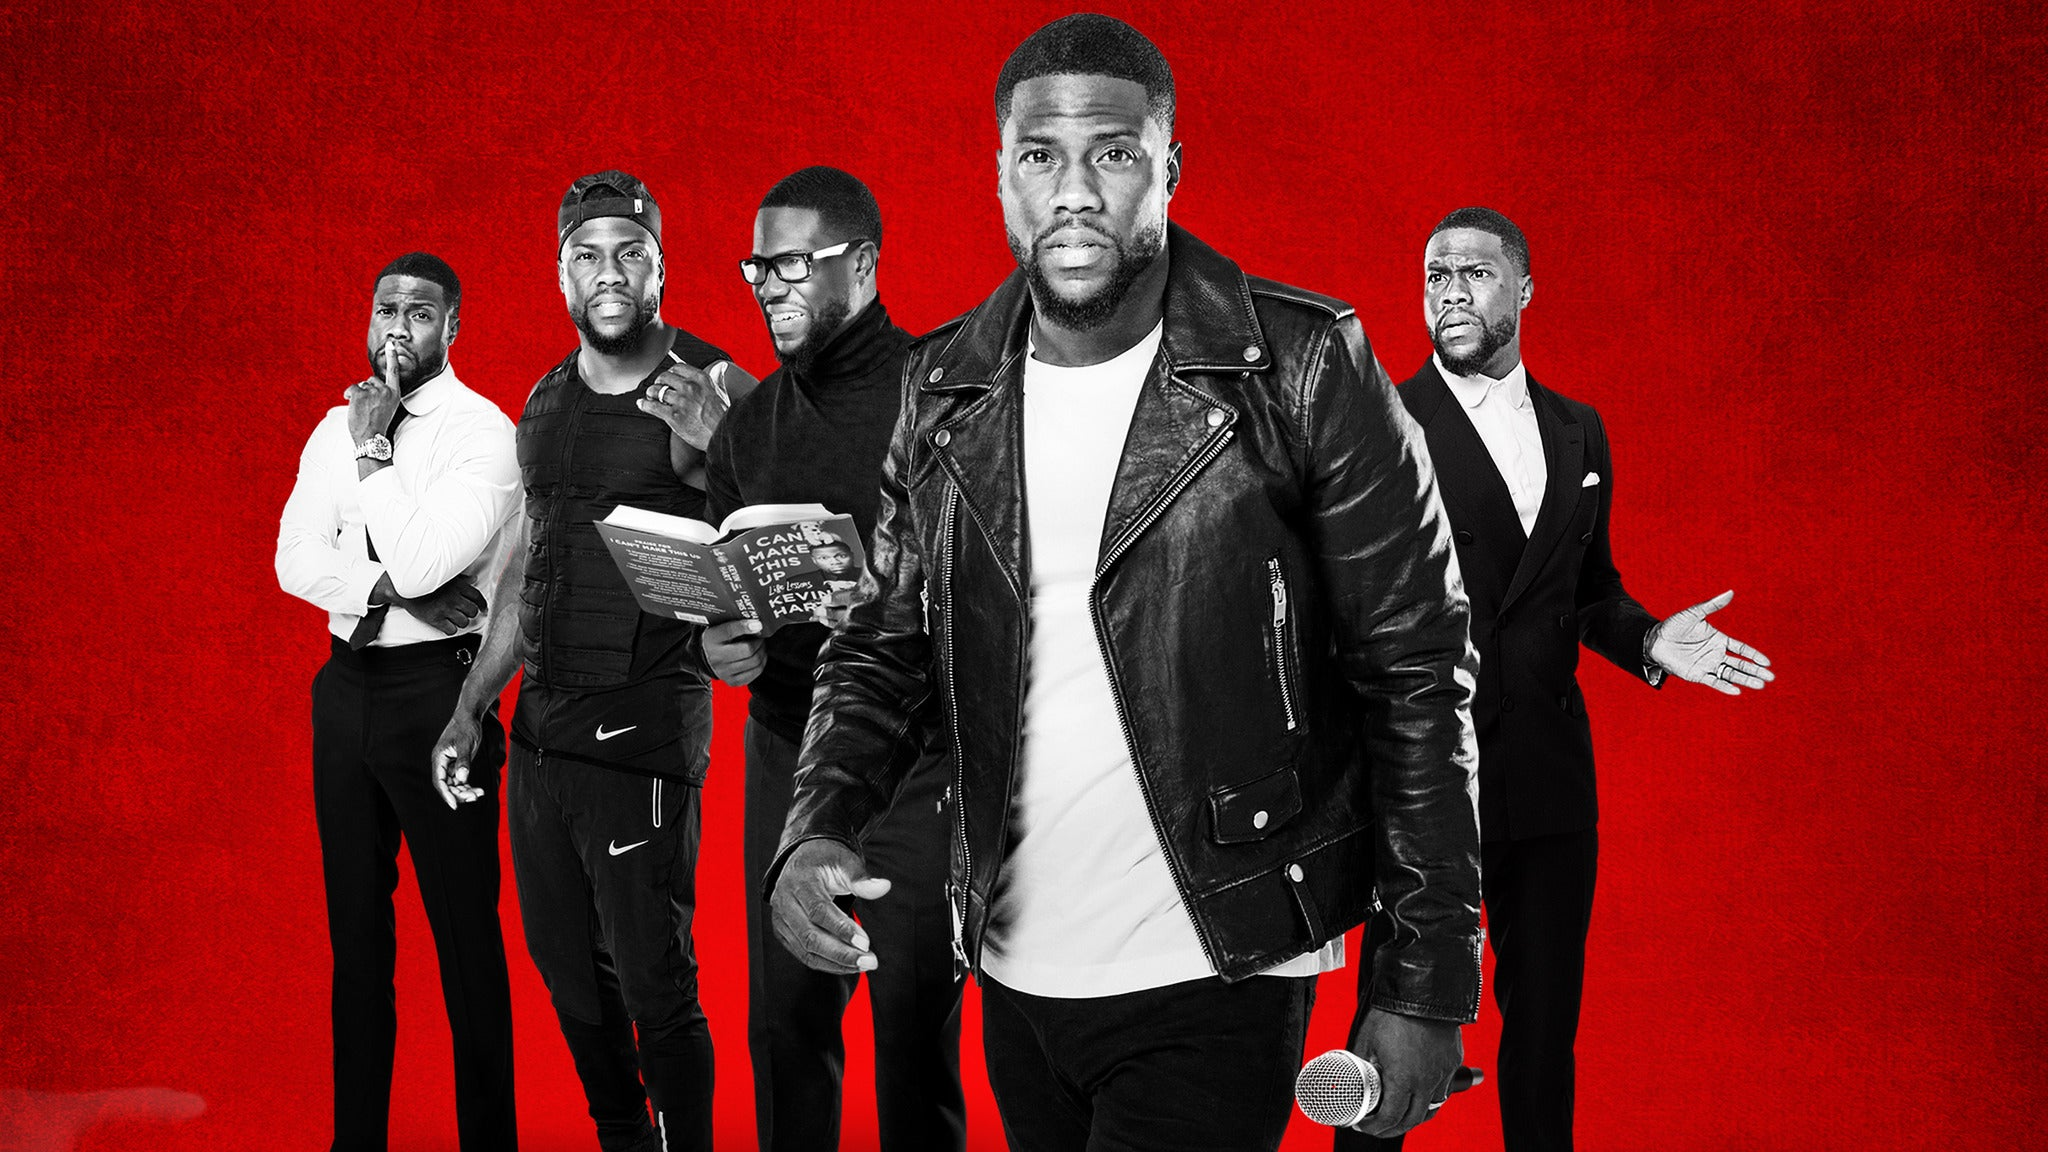 Kevin Hart: Irresponsible Tour at Rabobank Arena